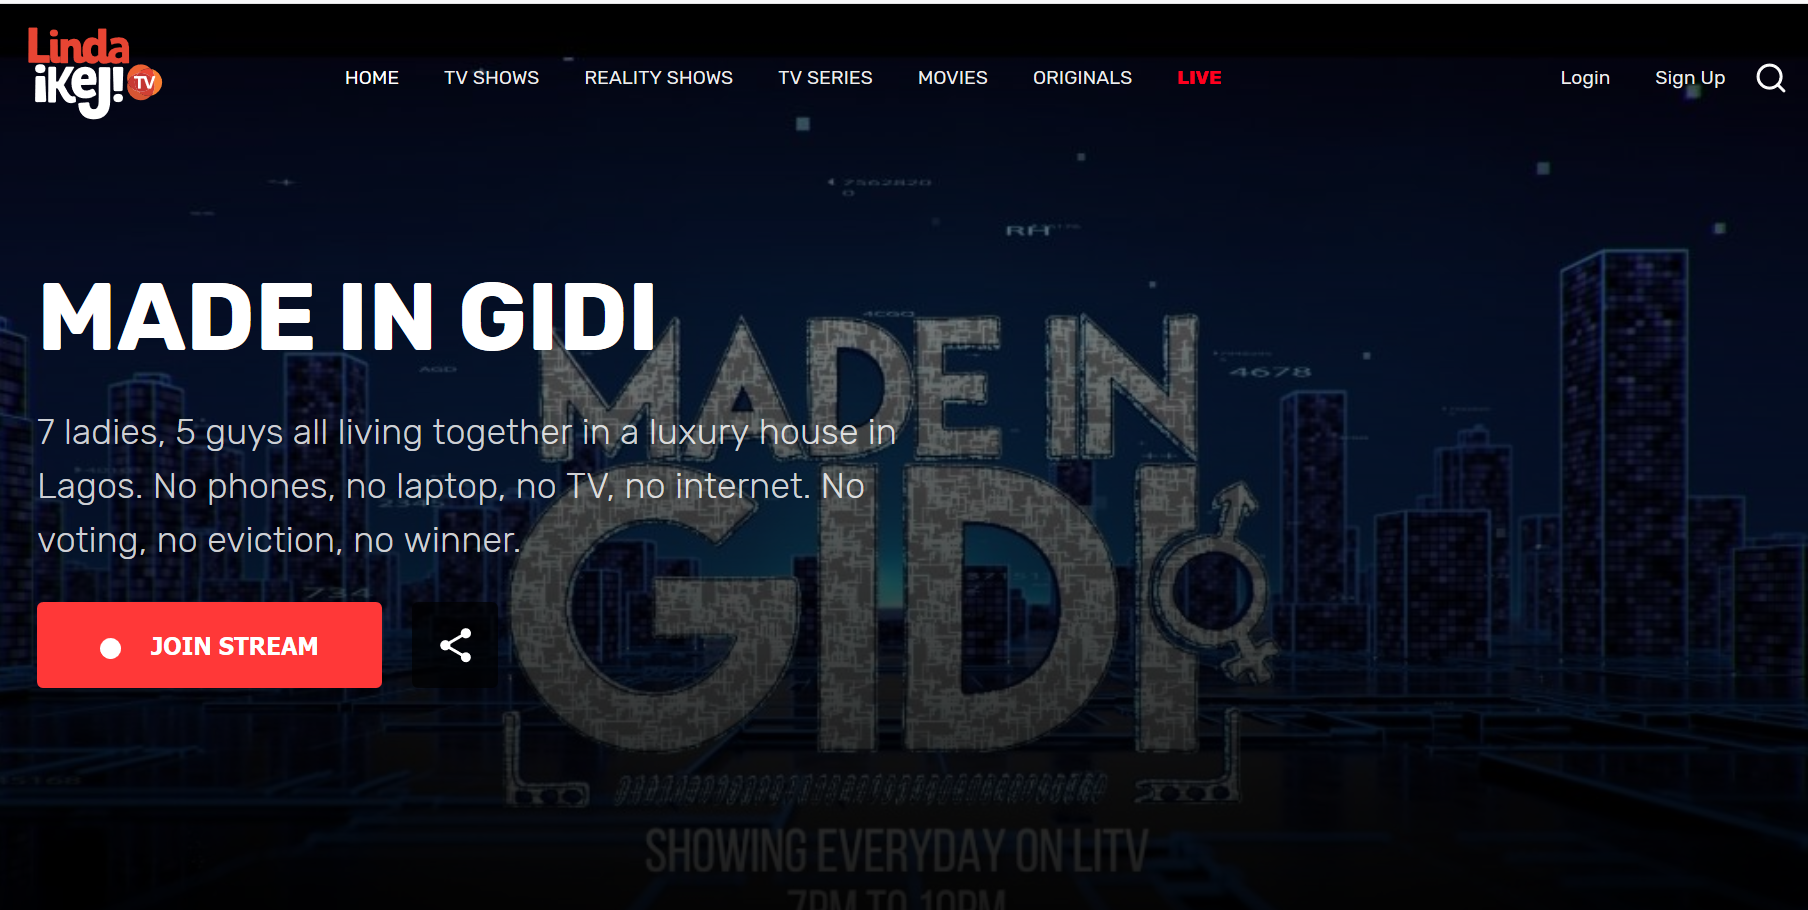 Made In Gidi reality show will start streaming live at 7pm - 10pm on lindaikeji.tv